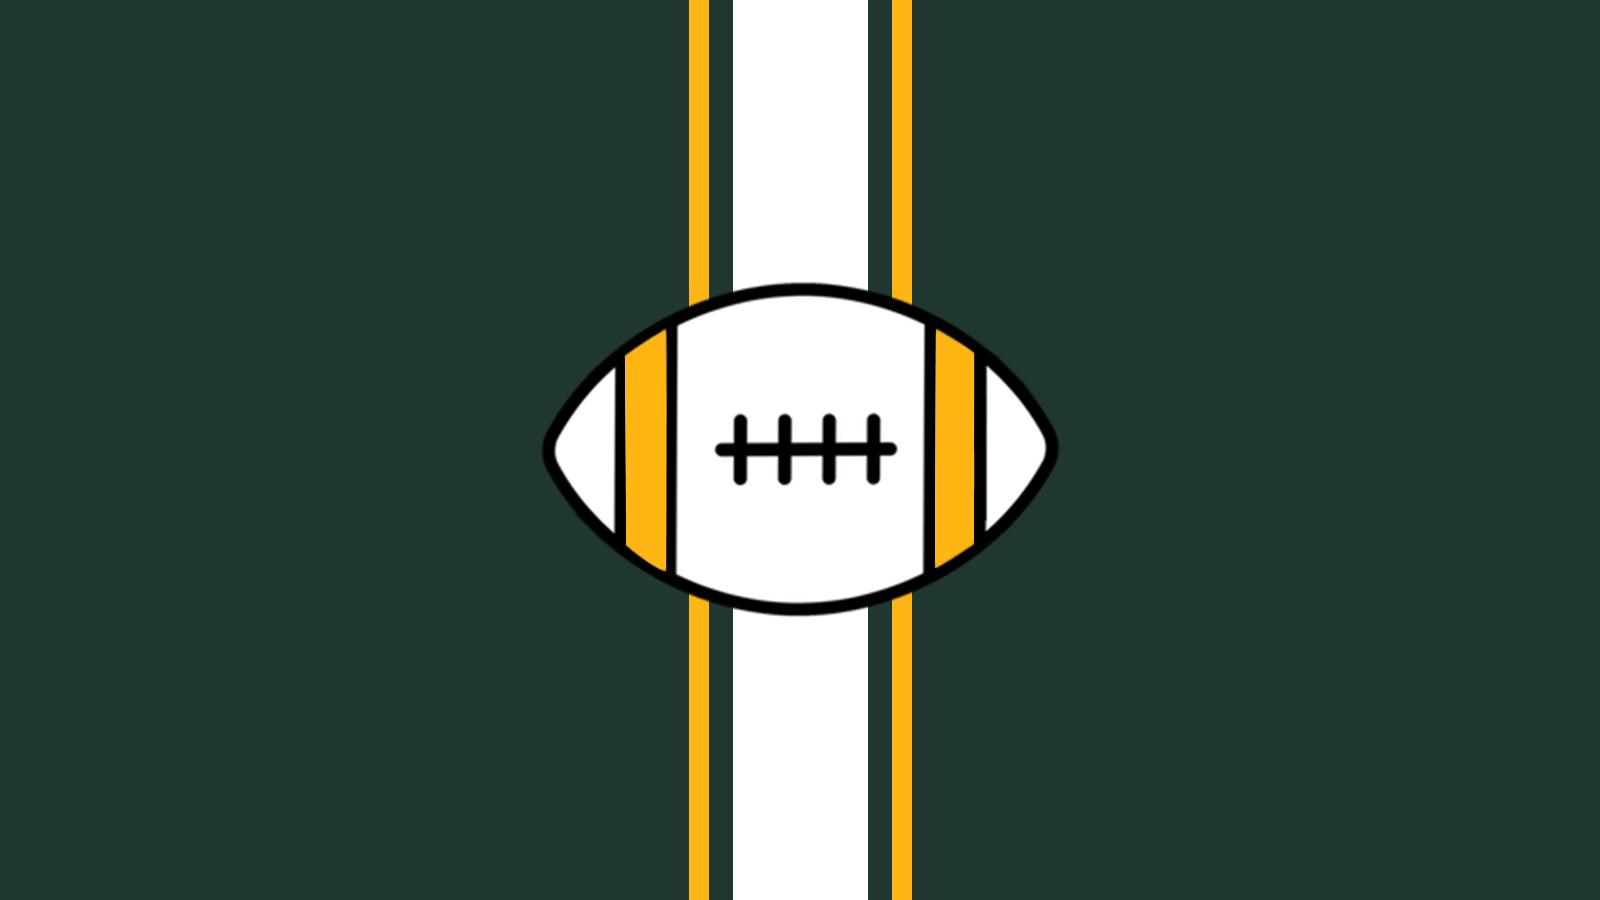 NFC Wild Card or Divisional Playoffs - TBD at Green Bay Packers (Date TBD) (If Necessary)